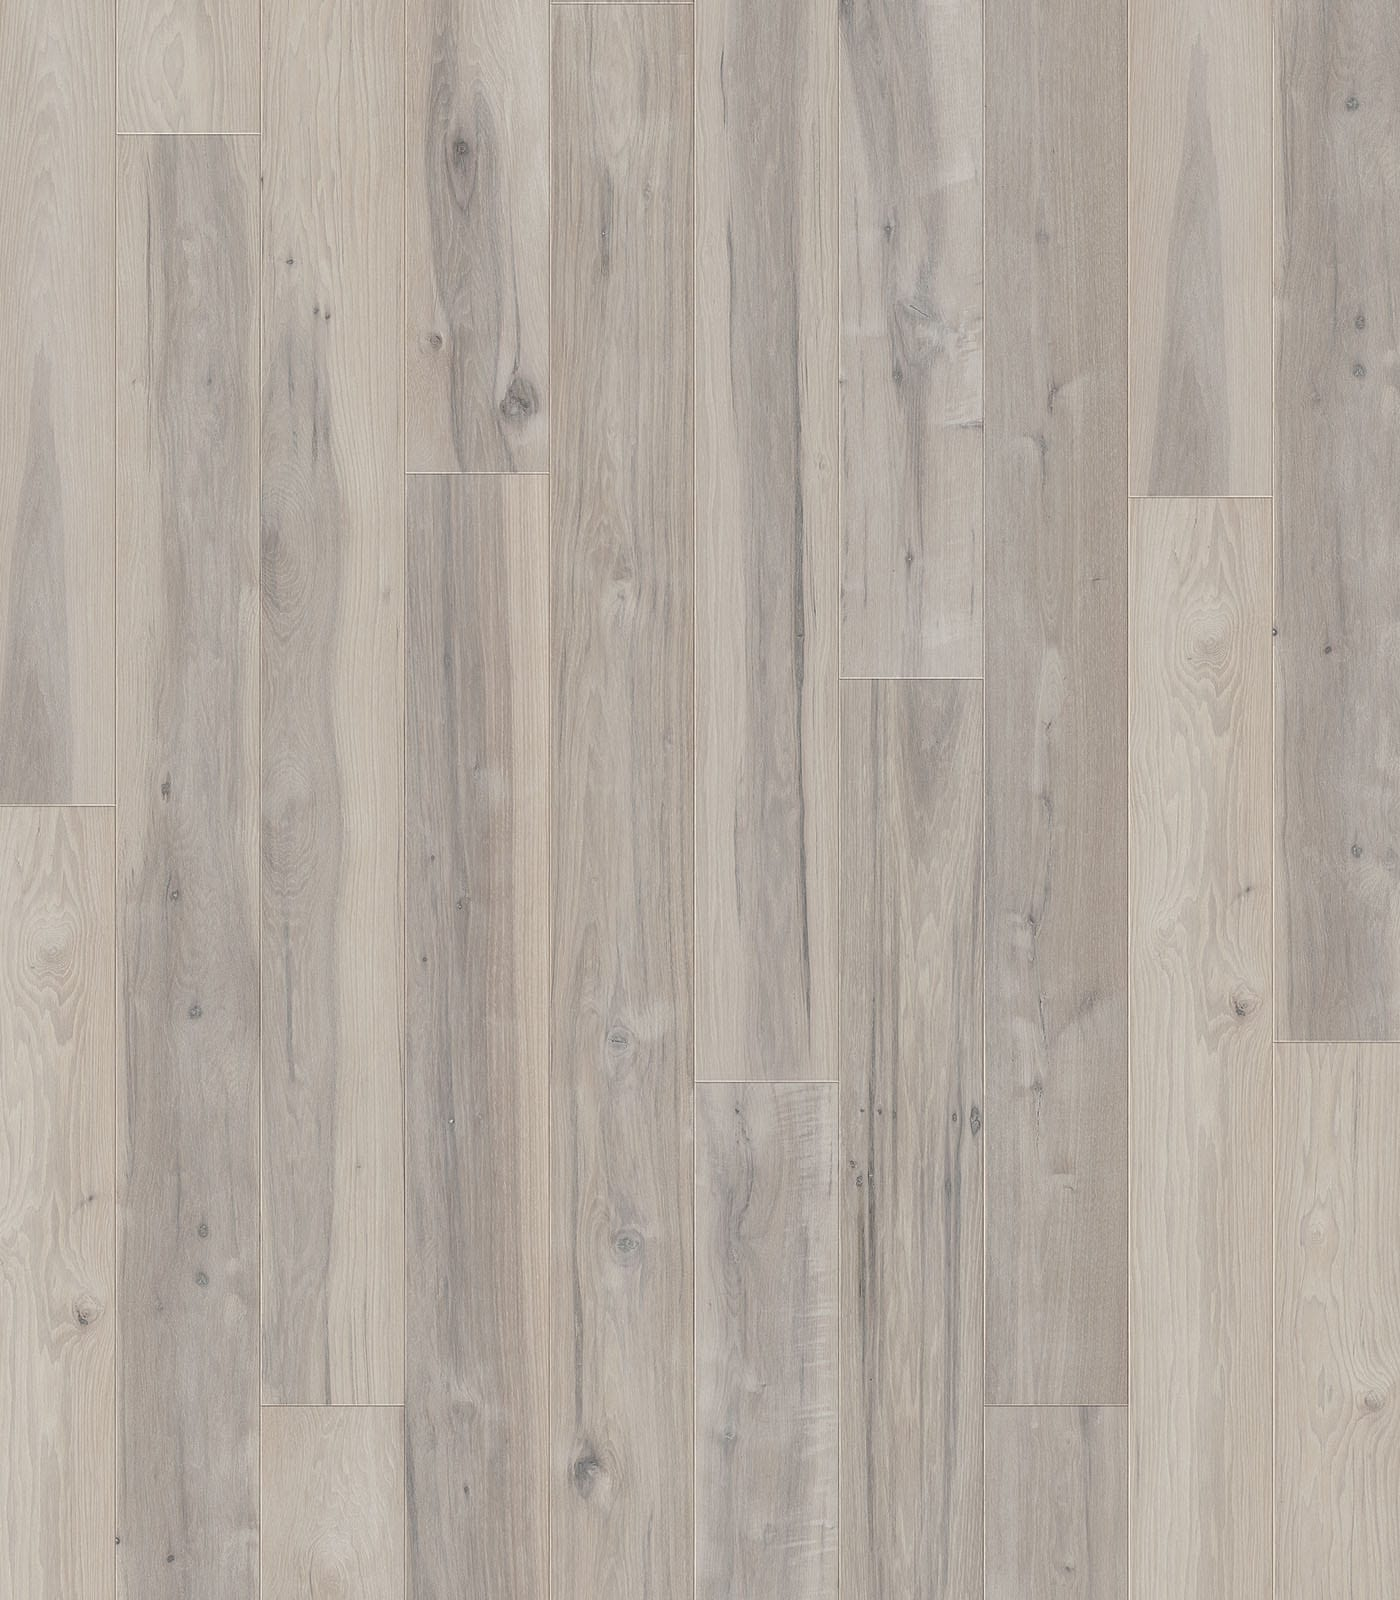 Austin-Pecan floors-After Oak Collection - flat